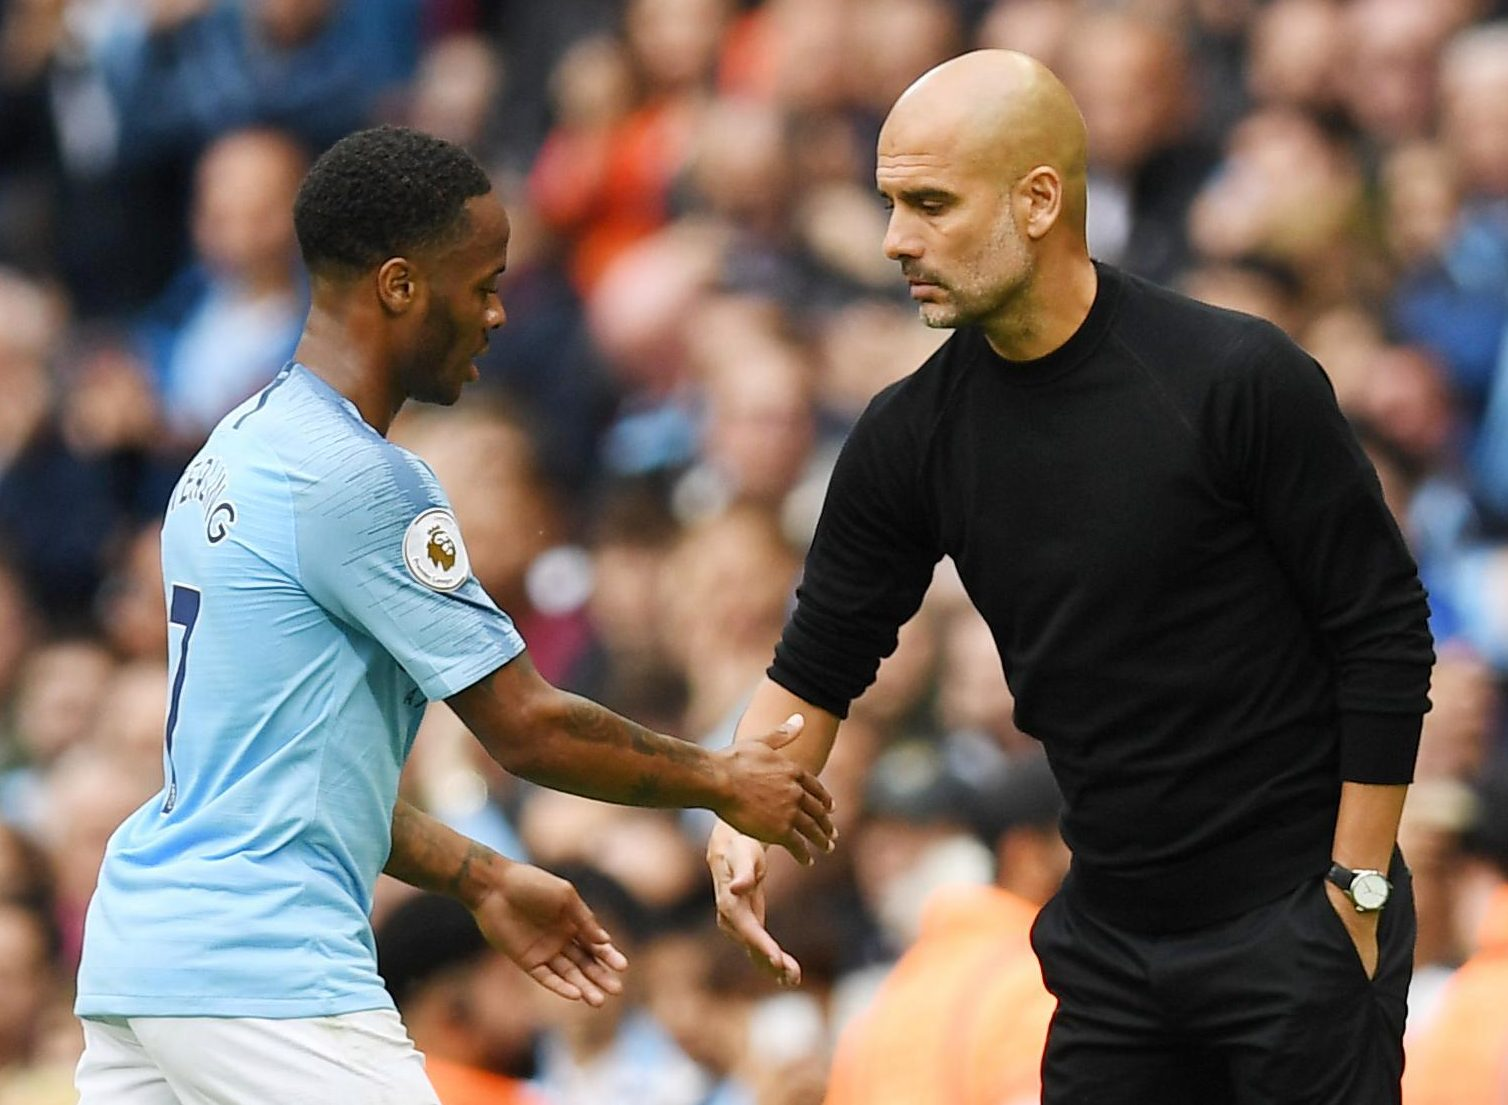 England striker Raheem Sterling can help boss Pep Guardiola and Manchester City mount their most serious bid yet for Champions League glory